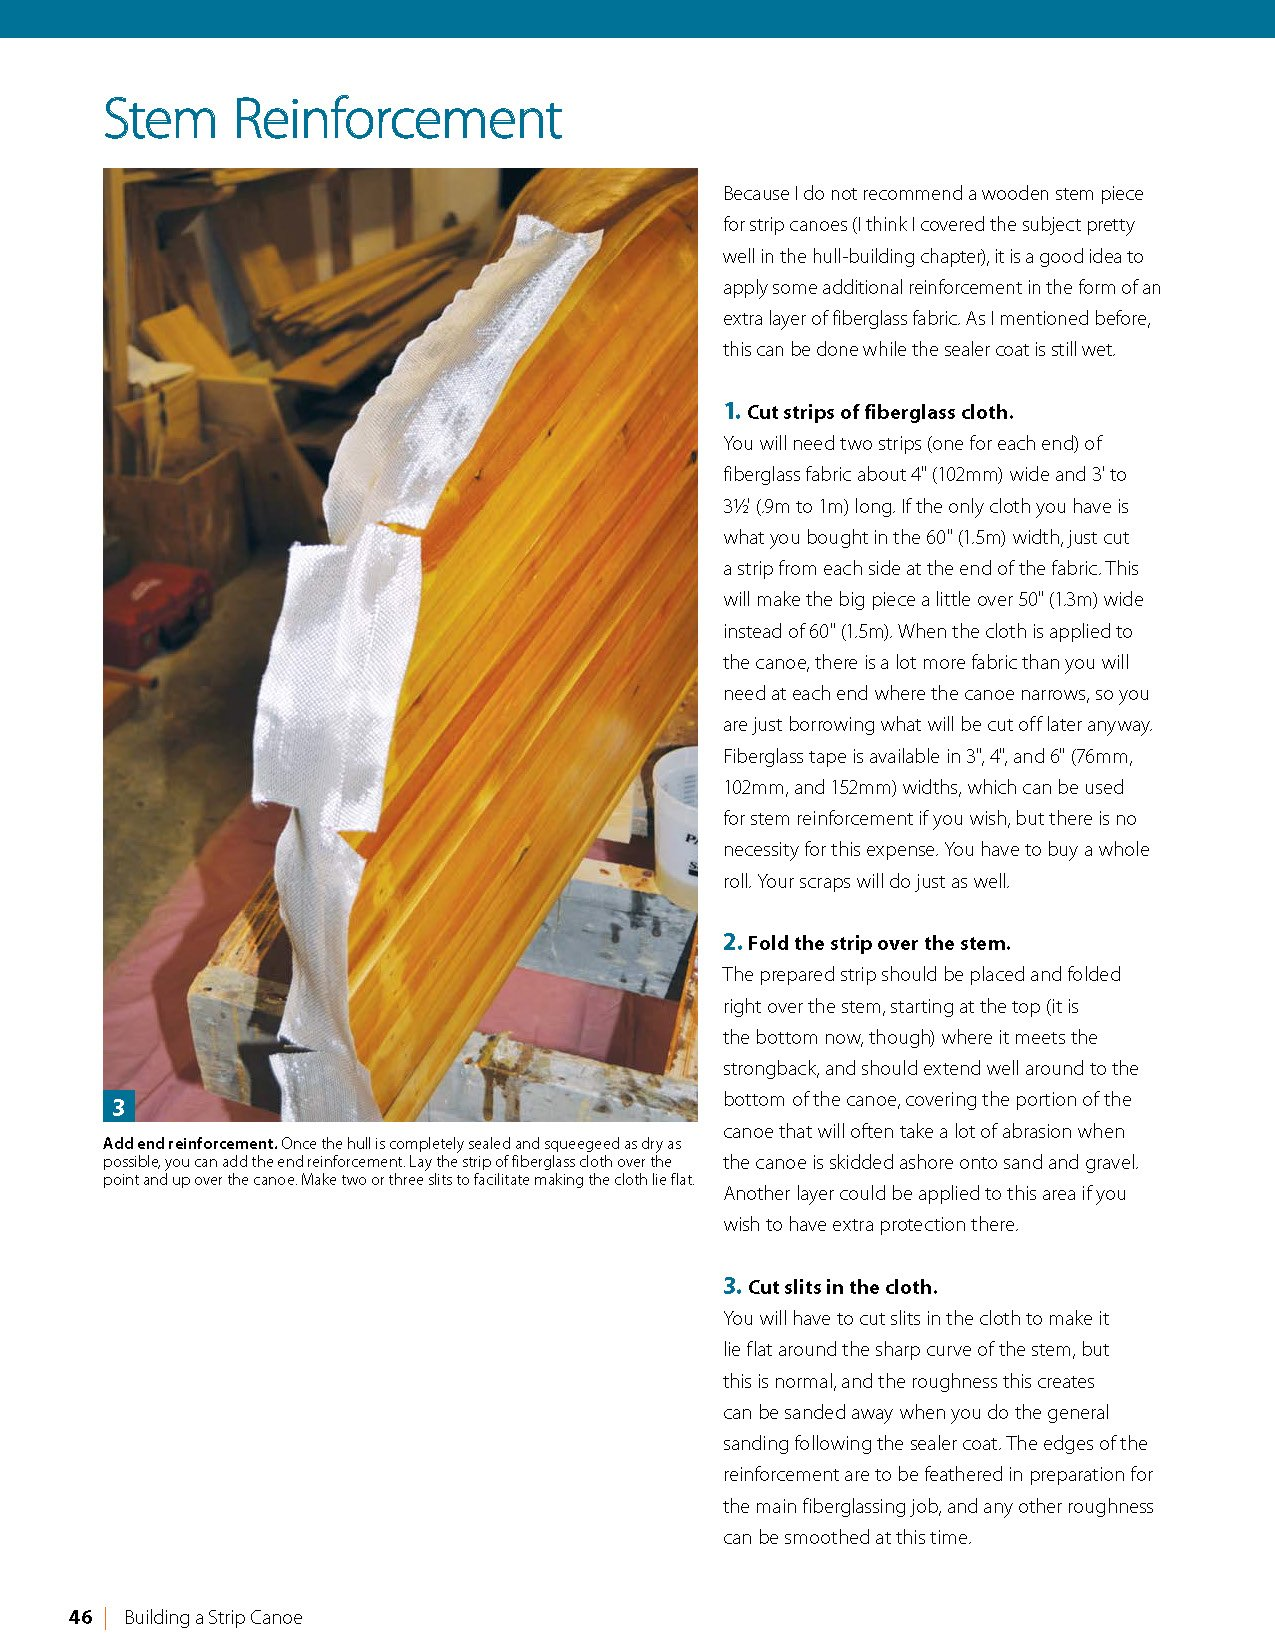 Building a Strip Canoe, Second Edition, Revised & Expanded: Full ...